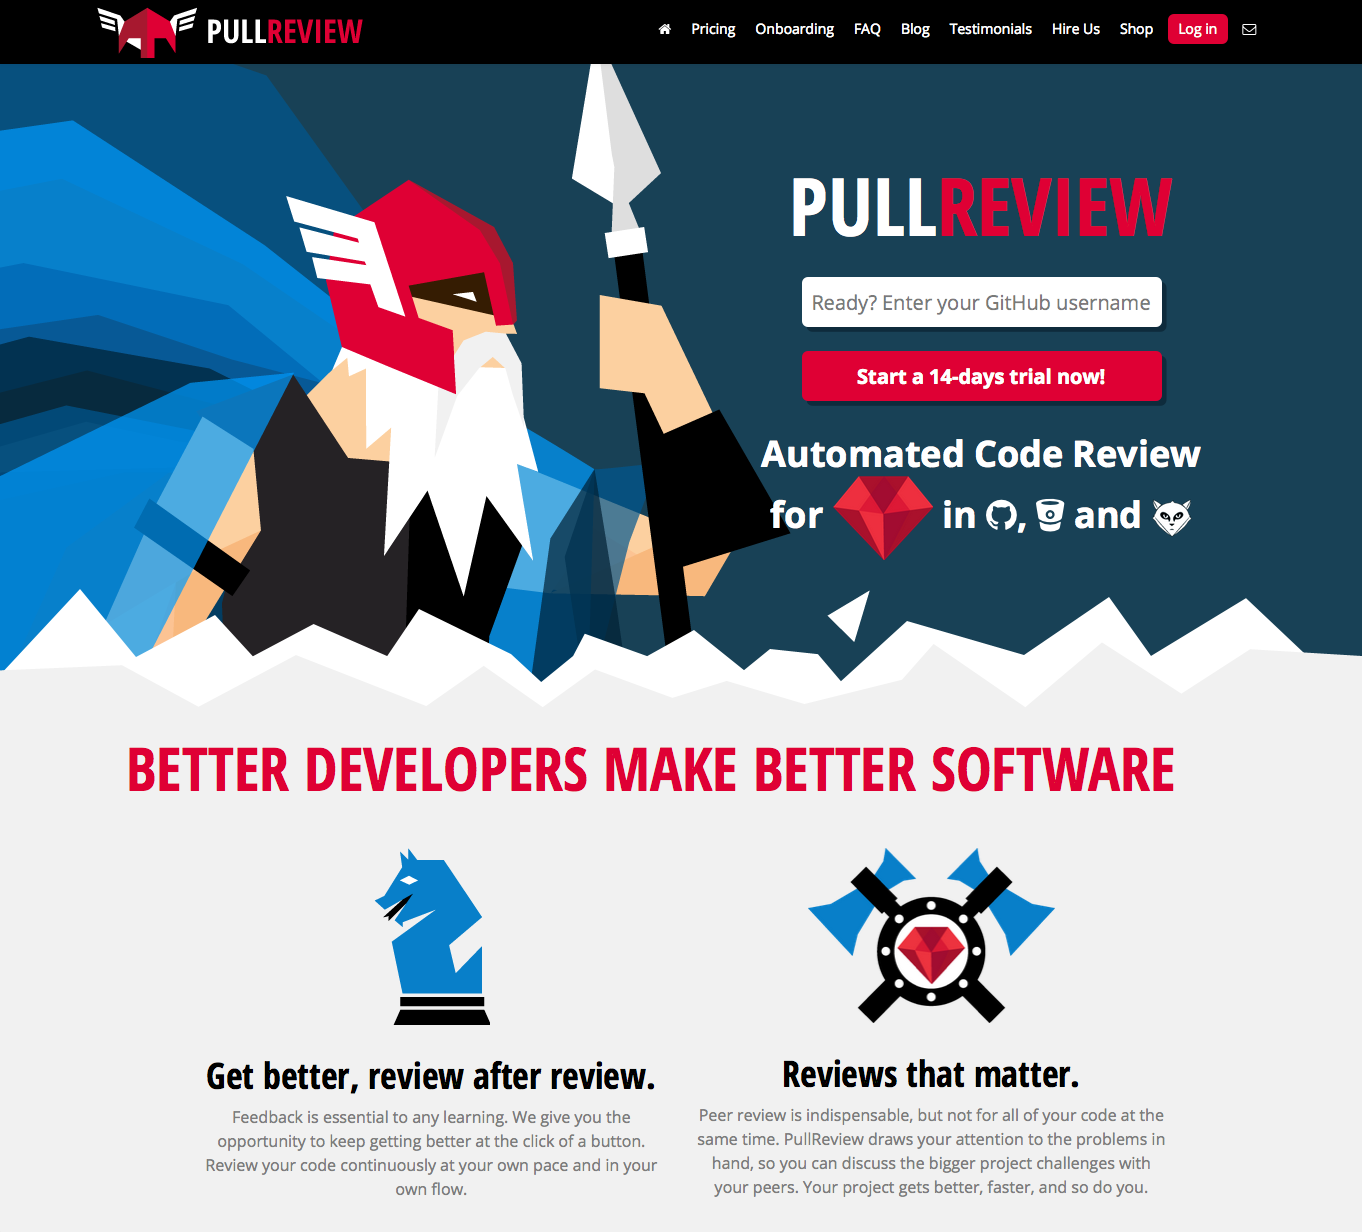 Pullreview homepage